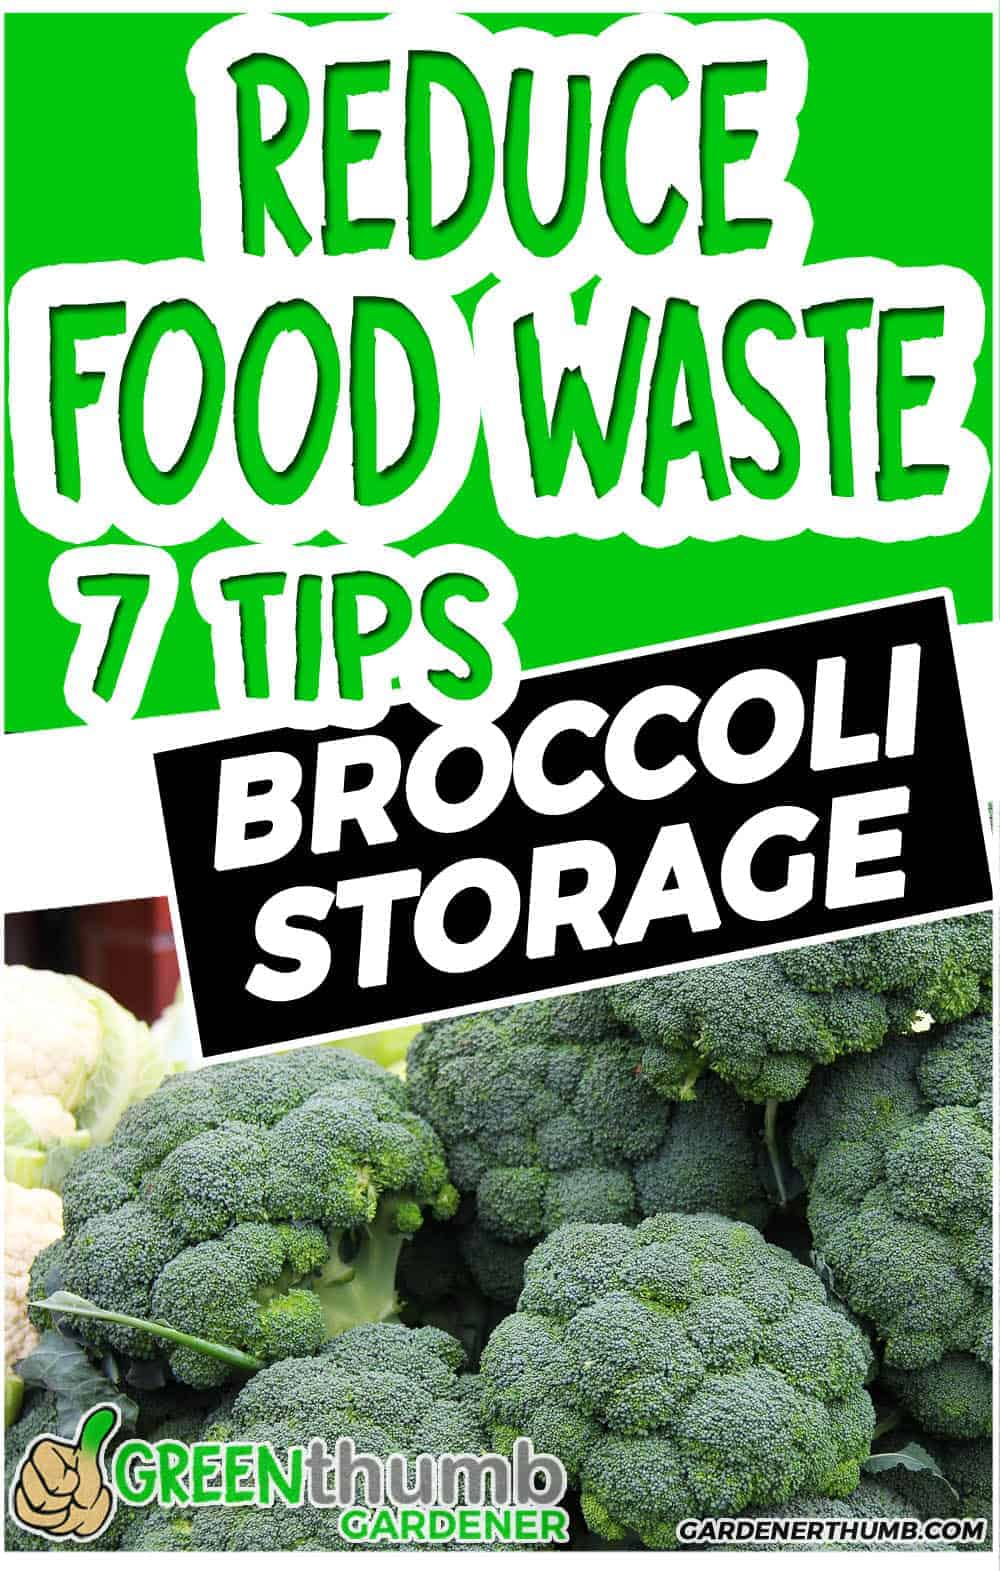 HOW LONG DOES BROCCOLI LASTs